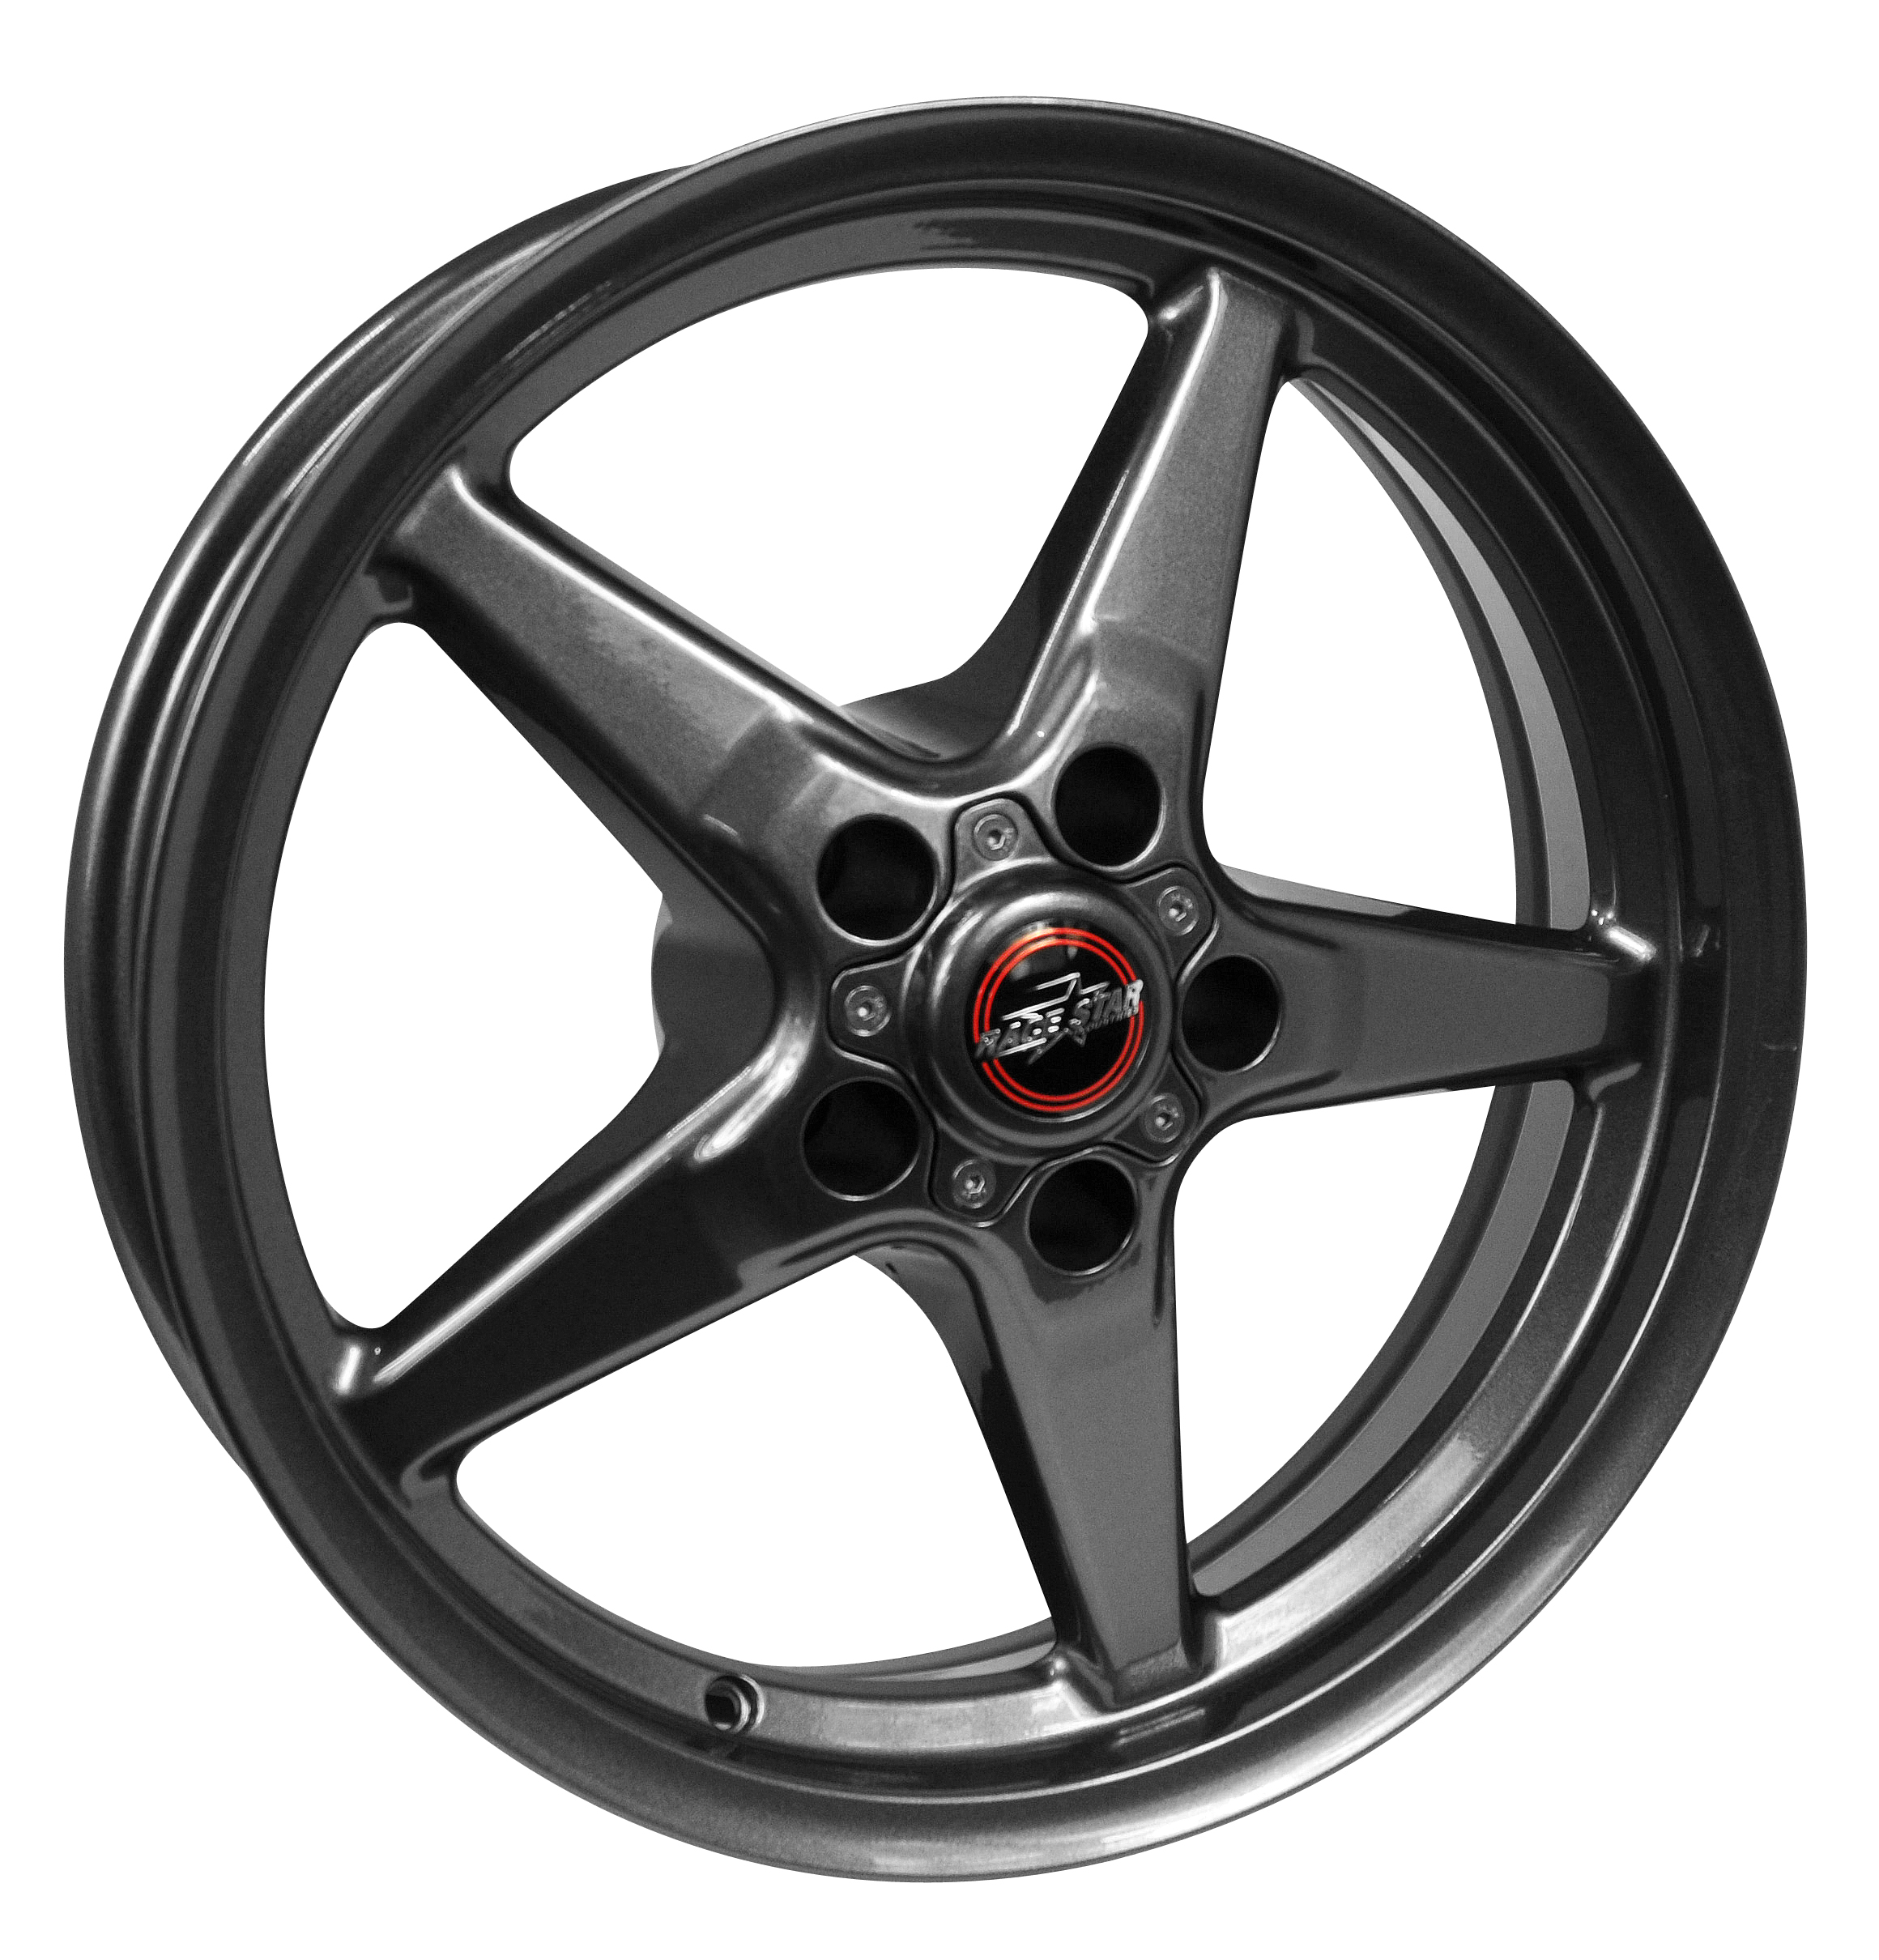 Whipple Supercharger Hellcat: Race Star 17x9.5 Bracket Racer Wheel Dodge Metallic Gray